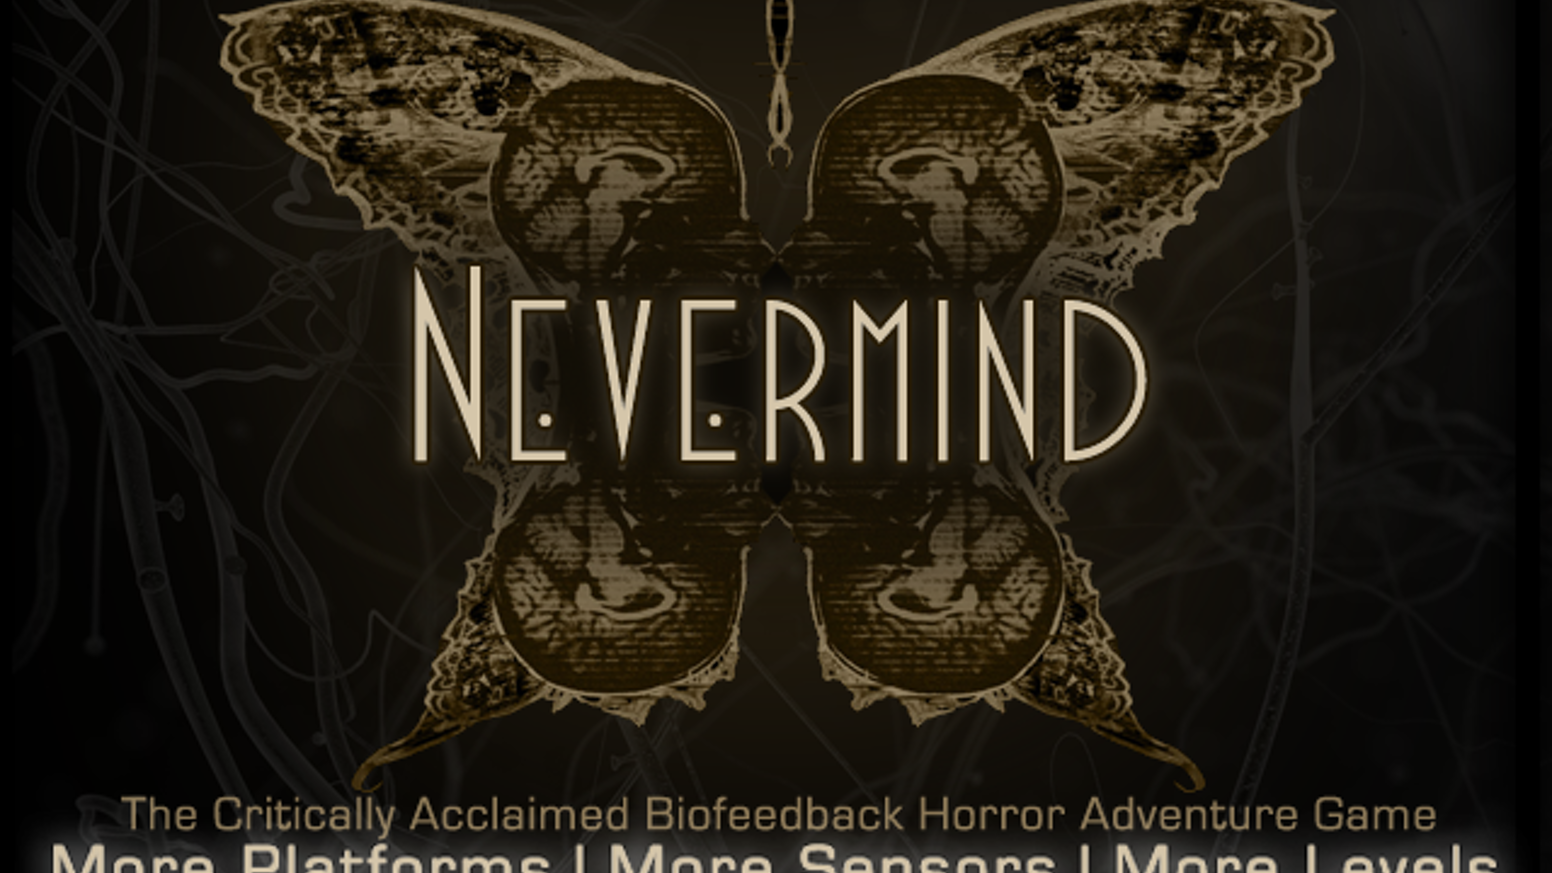 The award winning biofeedback horror adventure game is back! Thanks to your support, Nevermind is now available for Windows, Mac, Xbox One, Oculus Rift! http://store.steampowered.com/app/342260